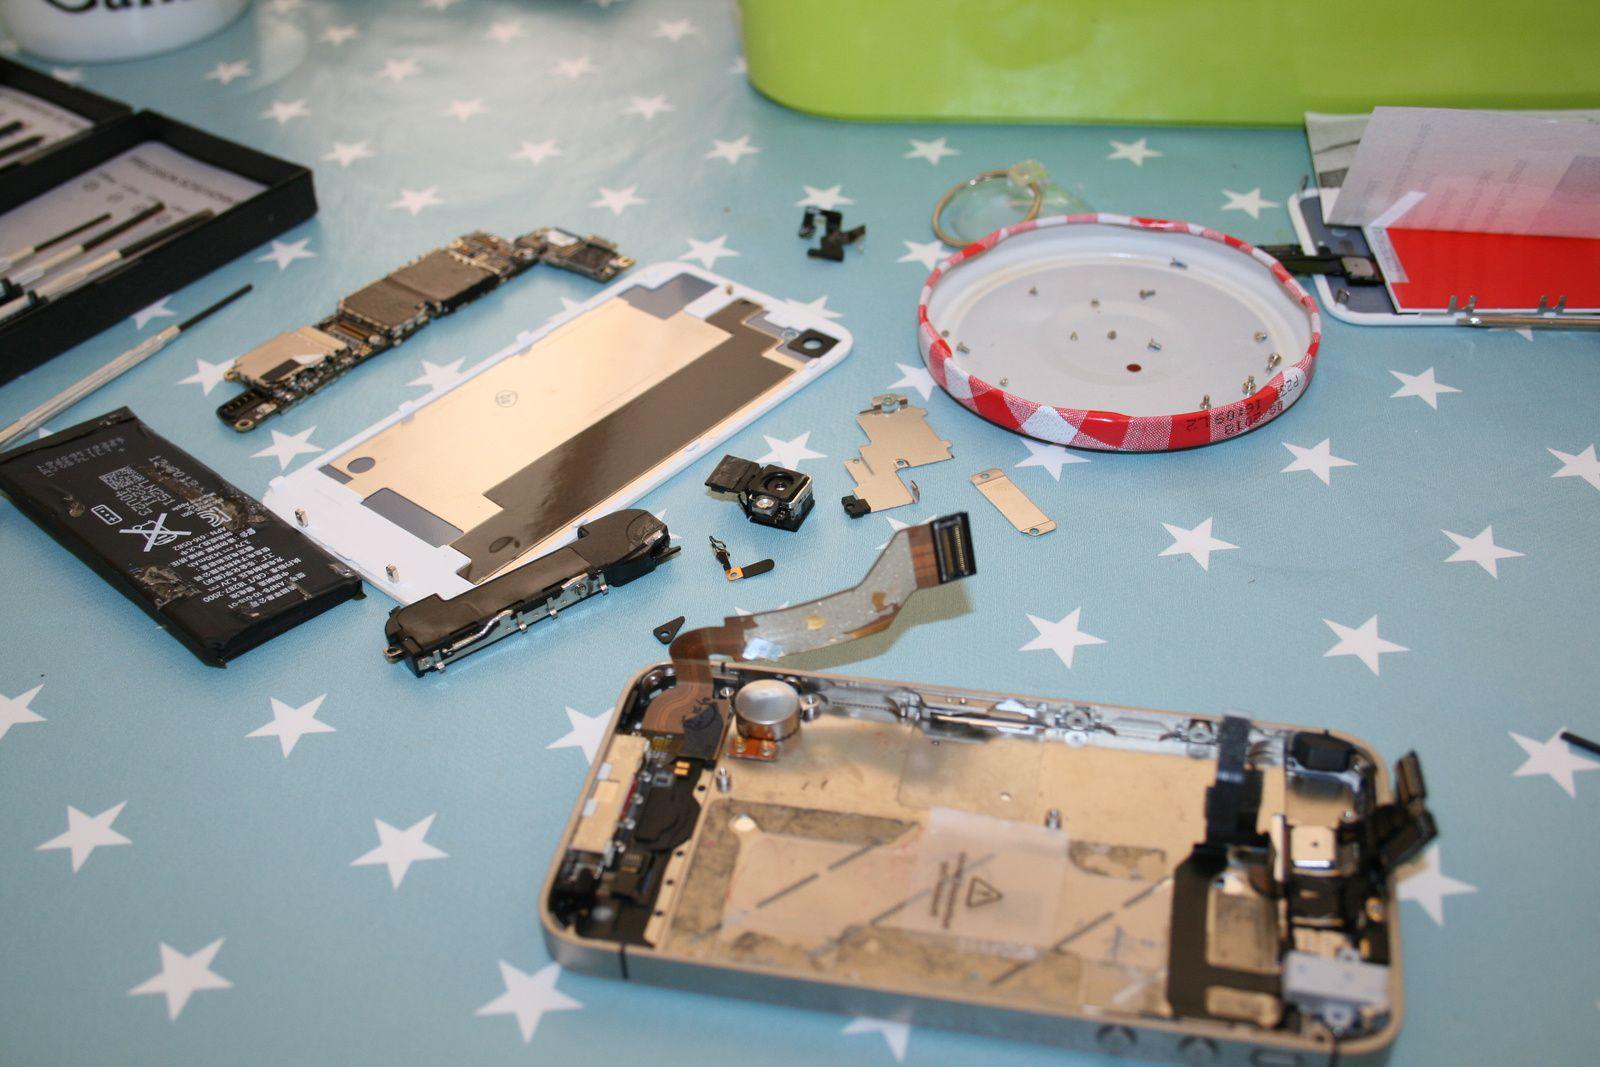 #iphone #reparation #vitre #charlotteblabla